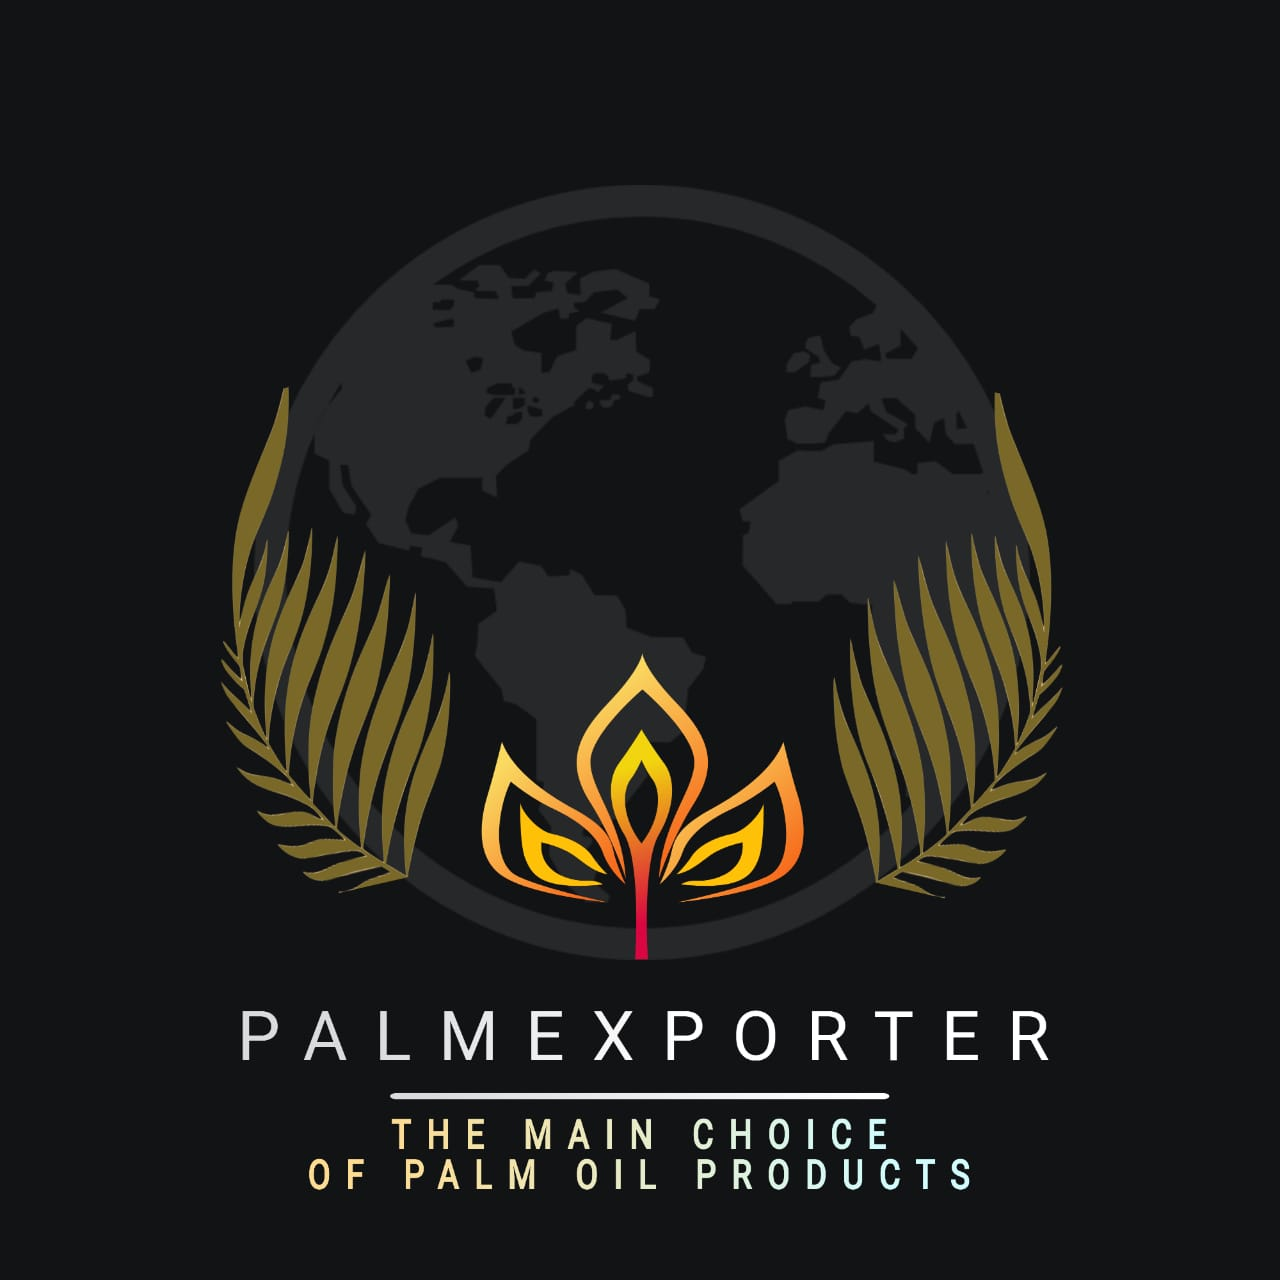 Palm Exporter